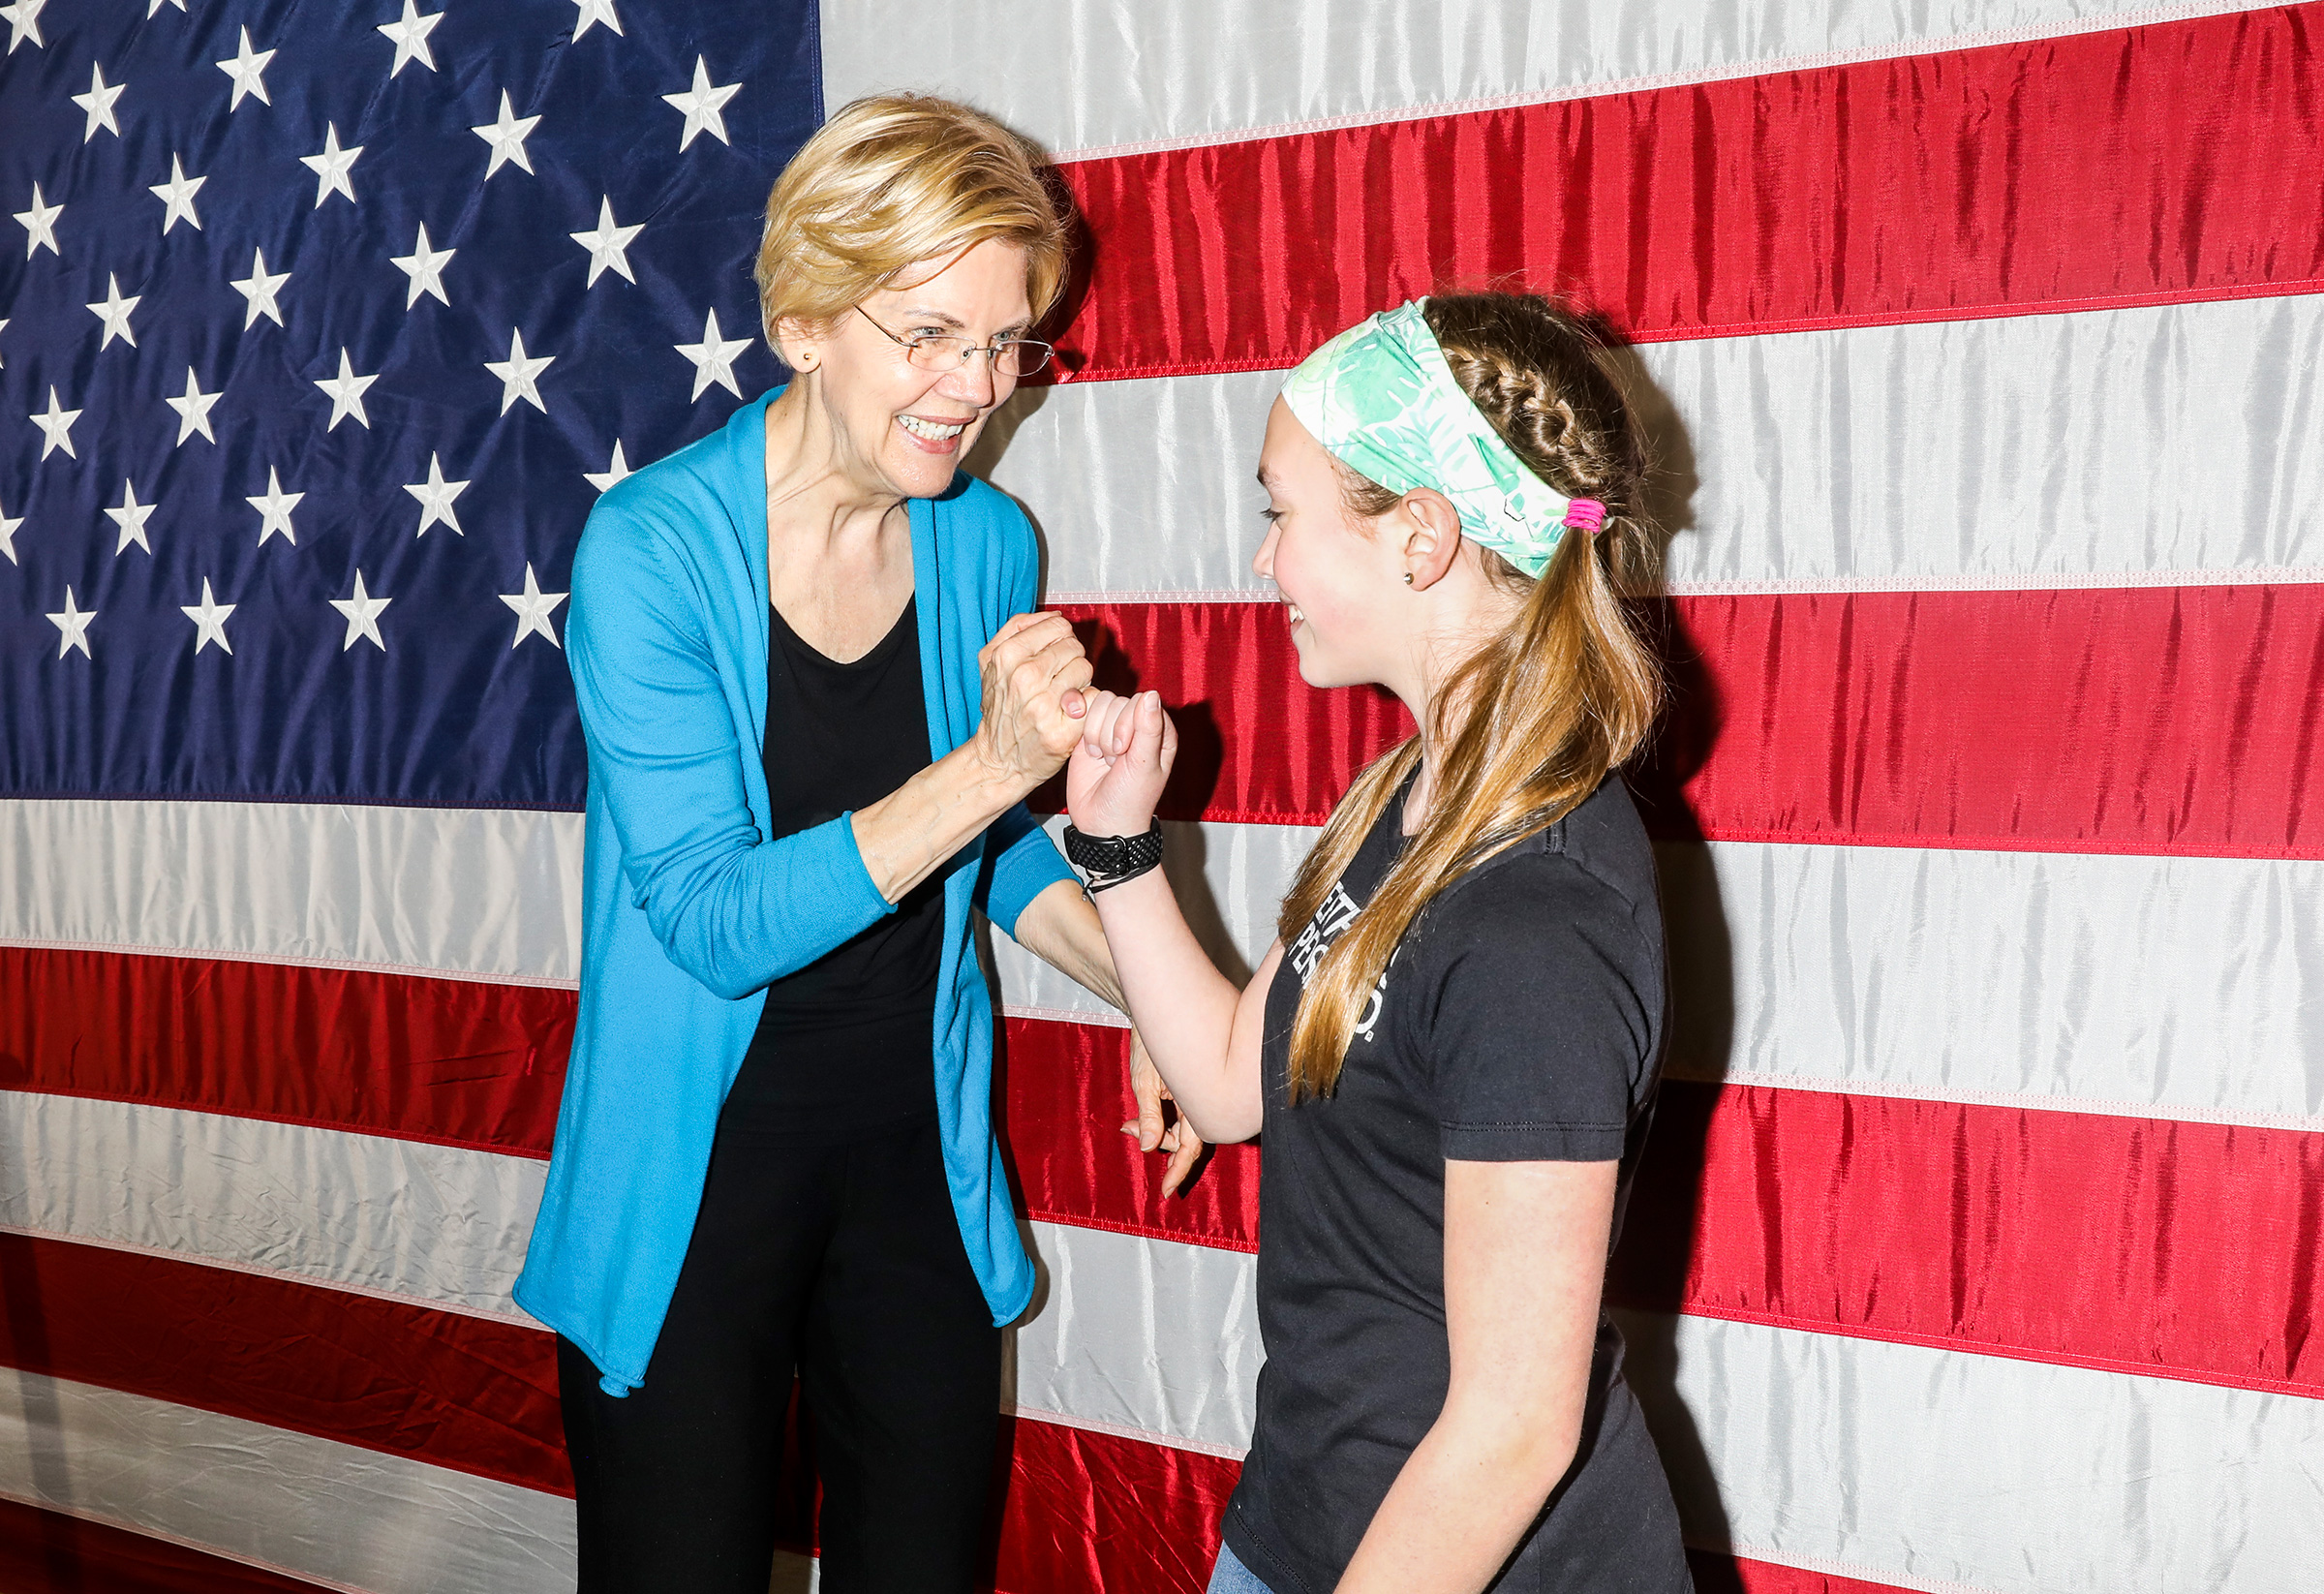 Warren on the campaign trail on May 3 in Iowa, where she's hired dozens of paid staff to compete in the first caucus state.